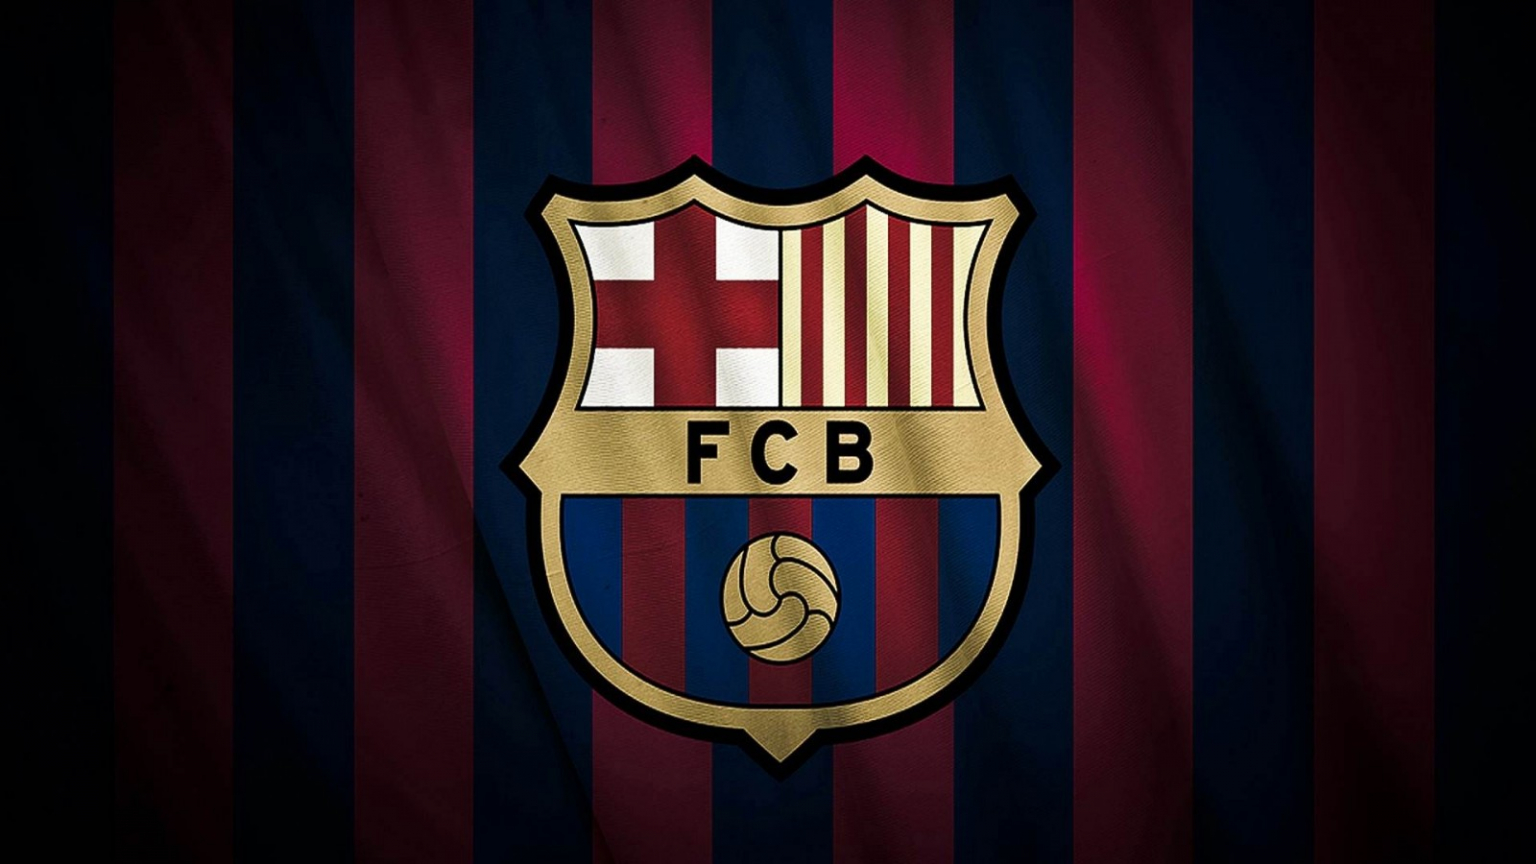 fc barcelona wallpaper hd